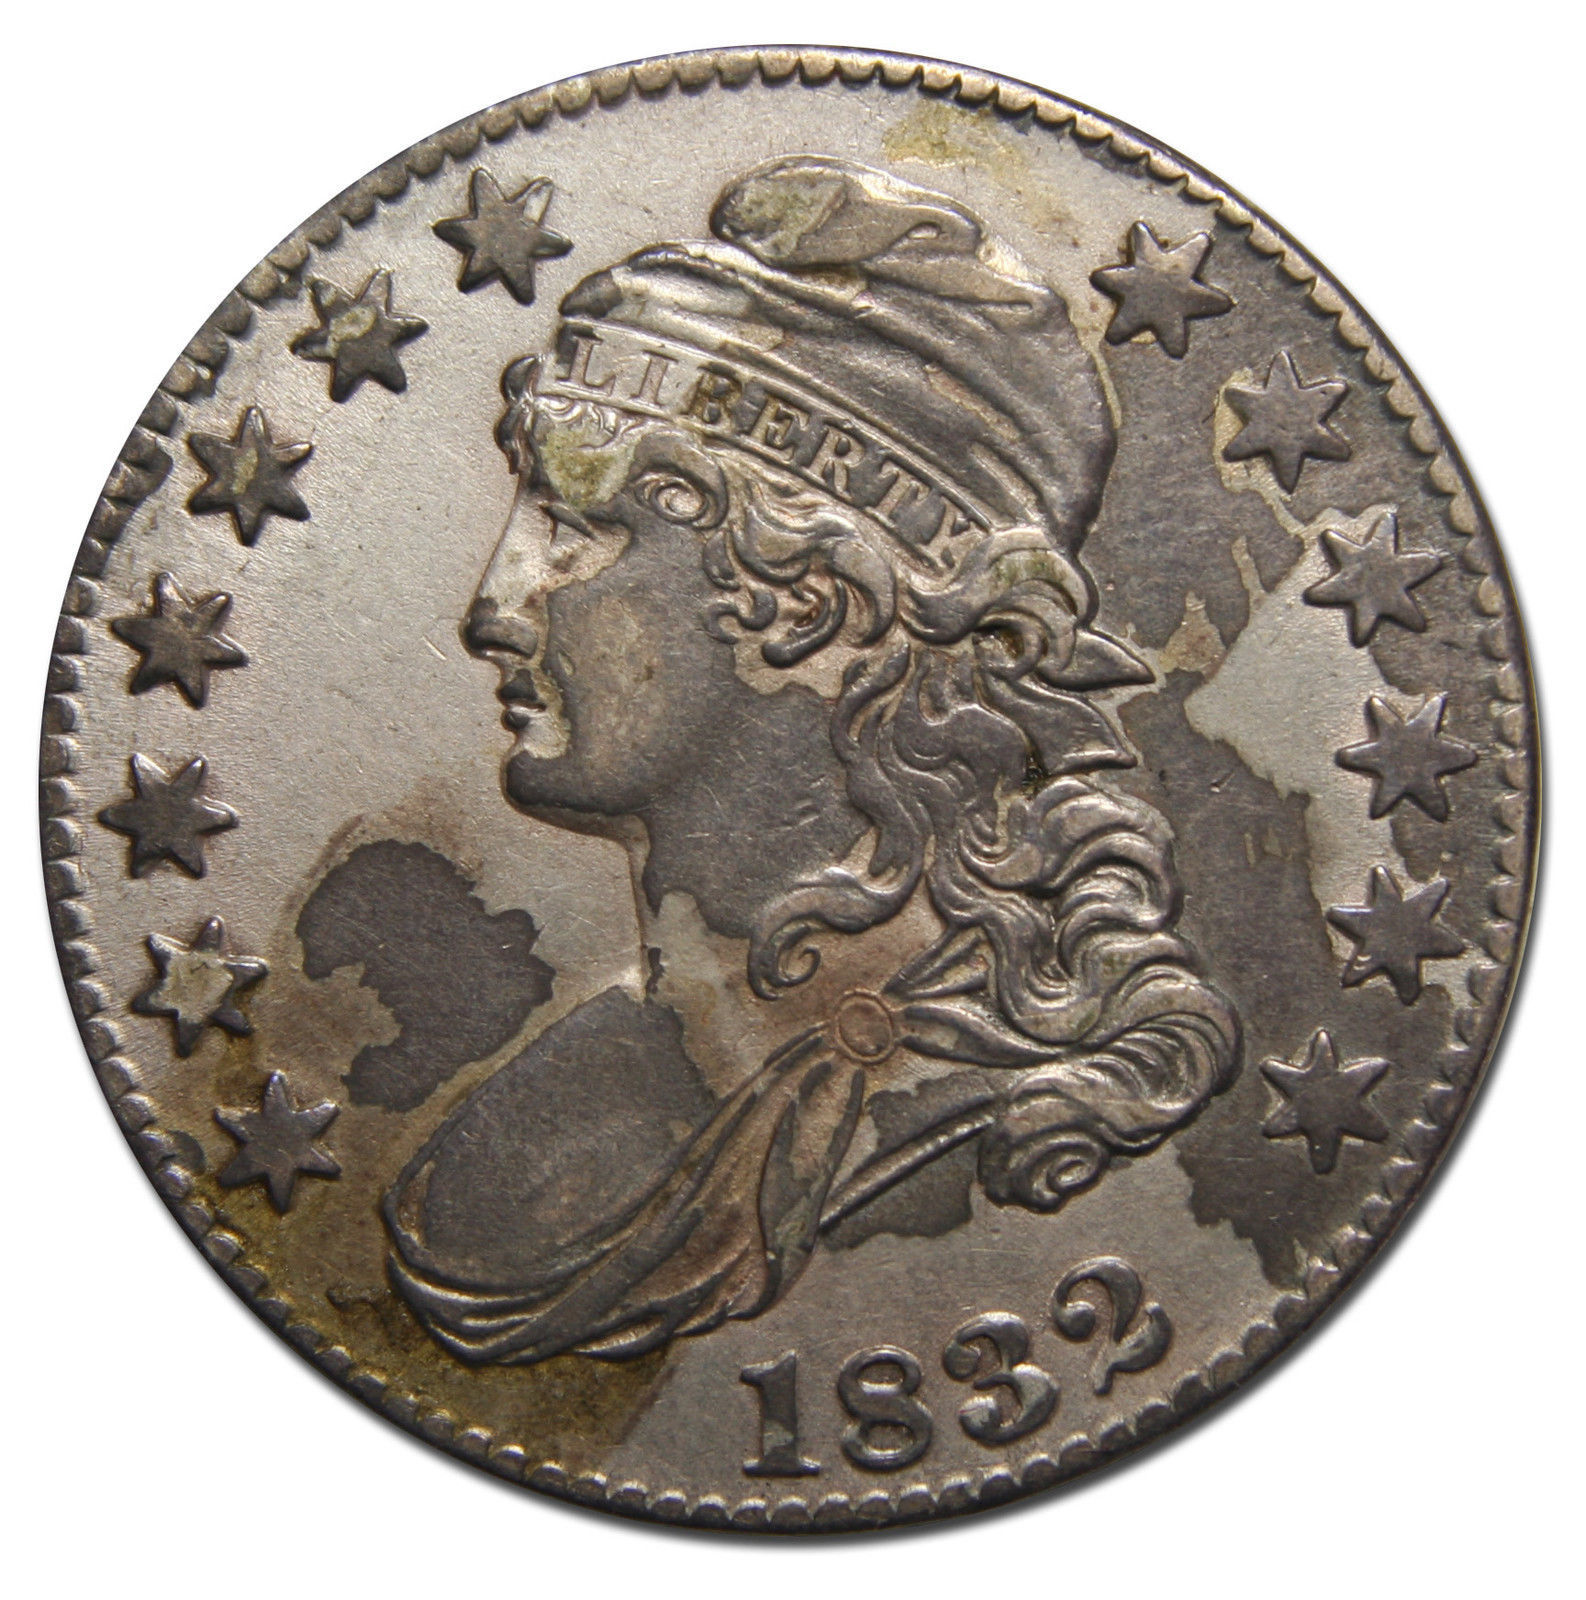 1832 Capped Bust Half Dollar 50¢ Coin Lot# MZ 3615